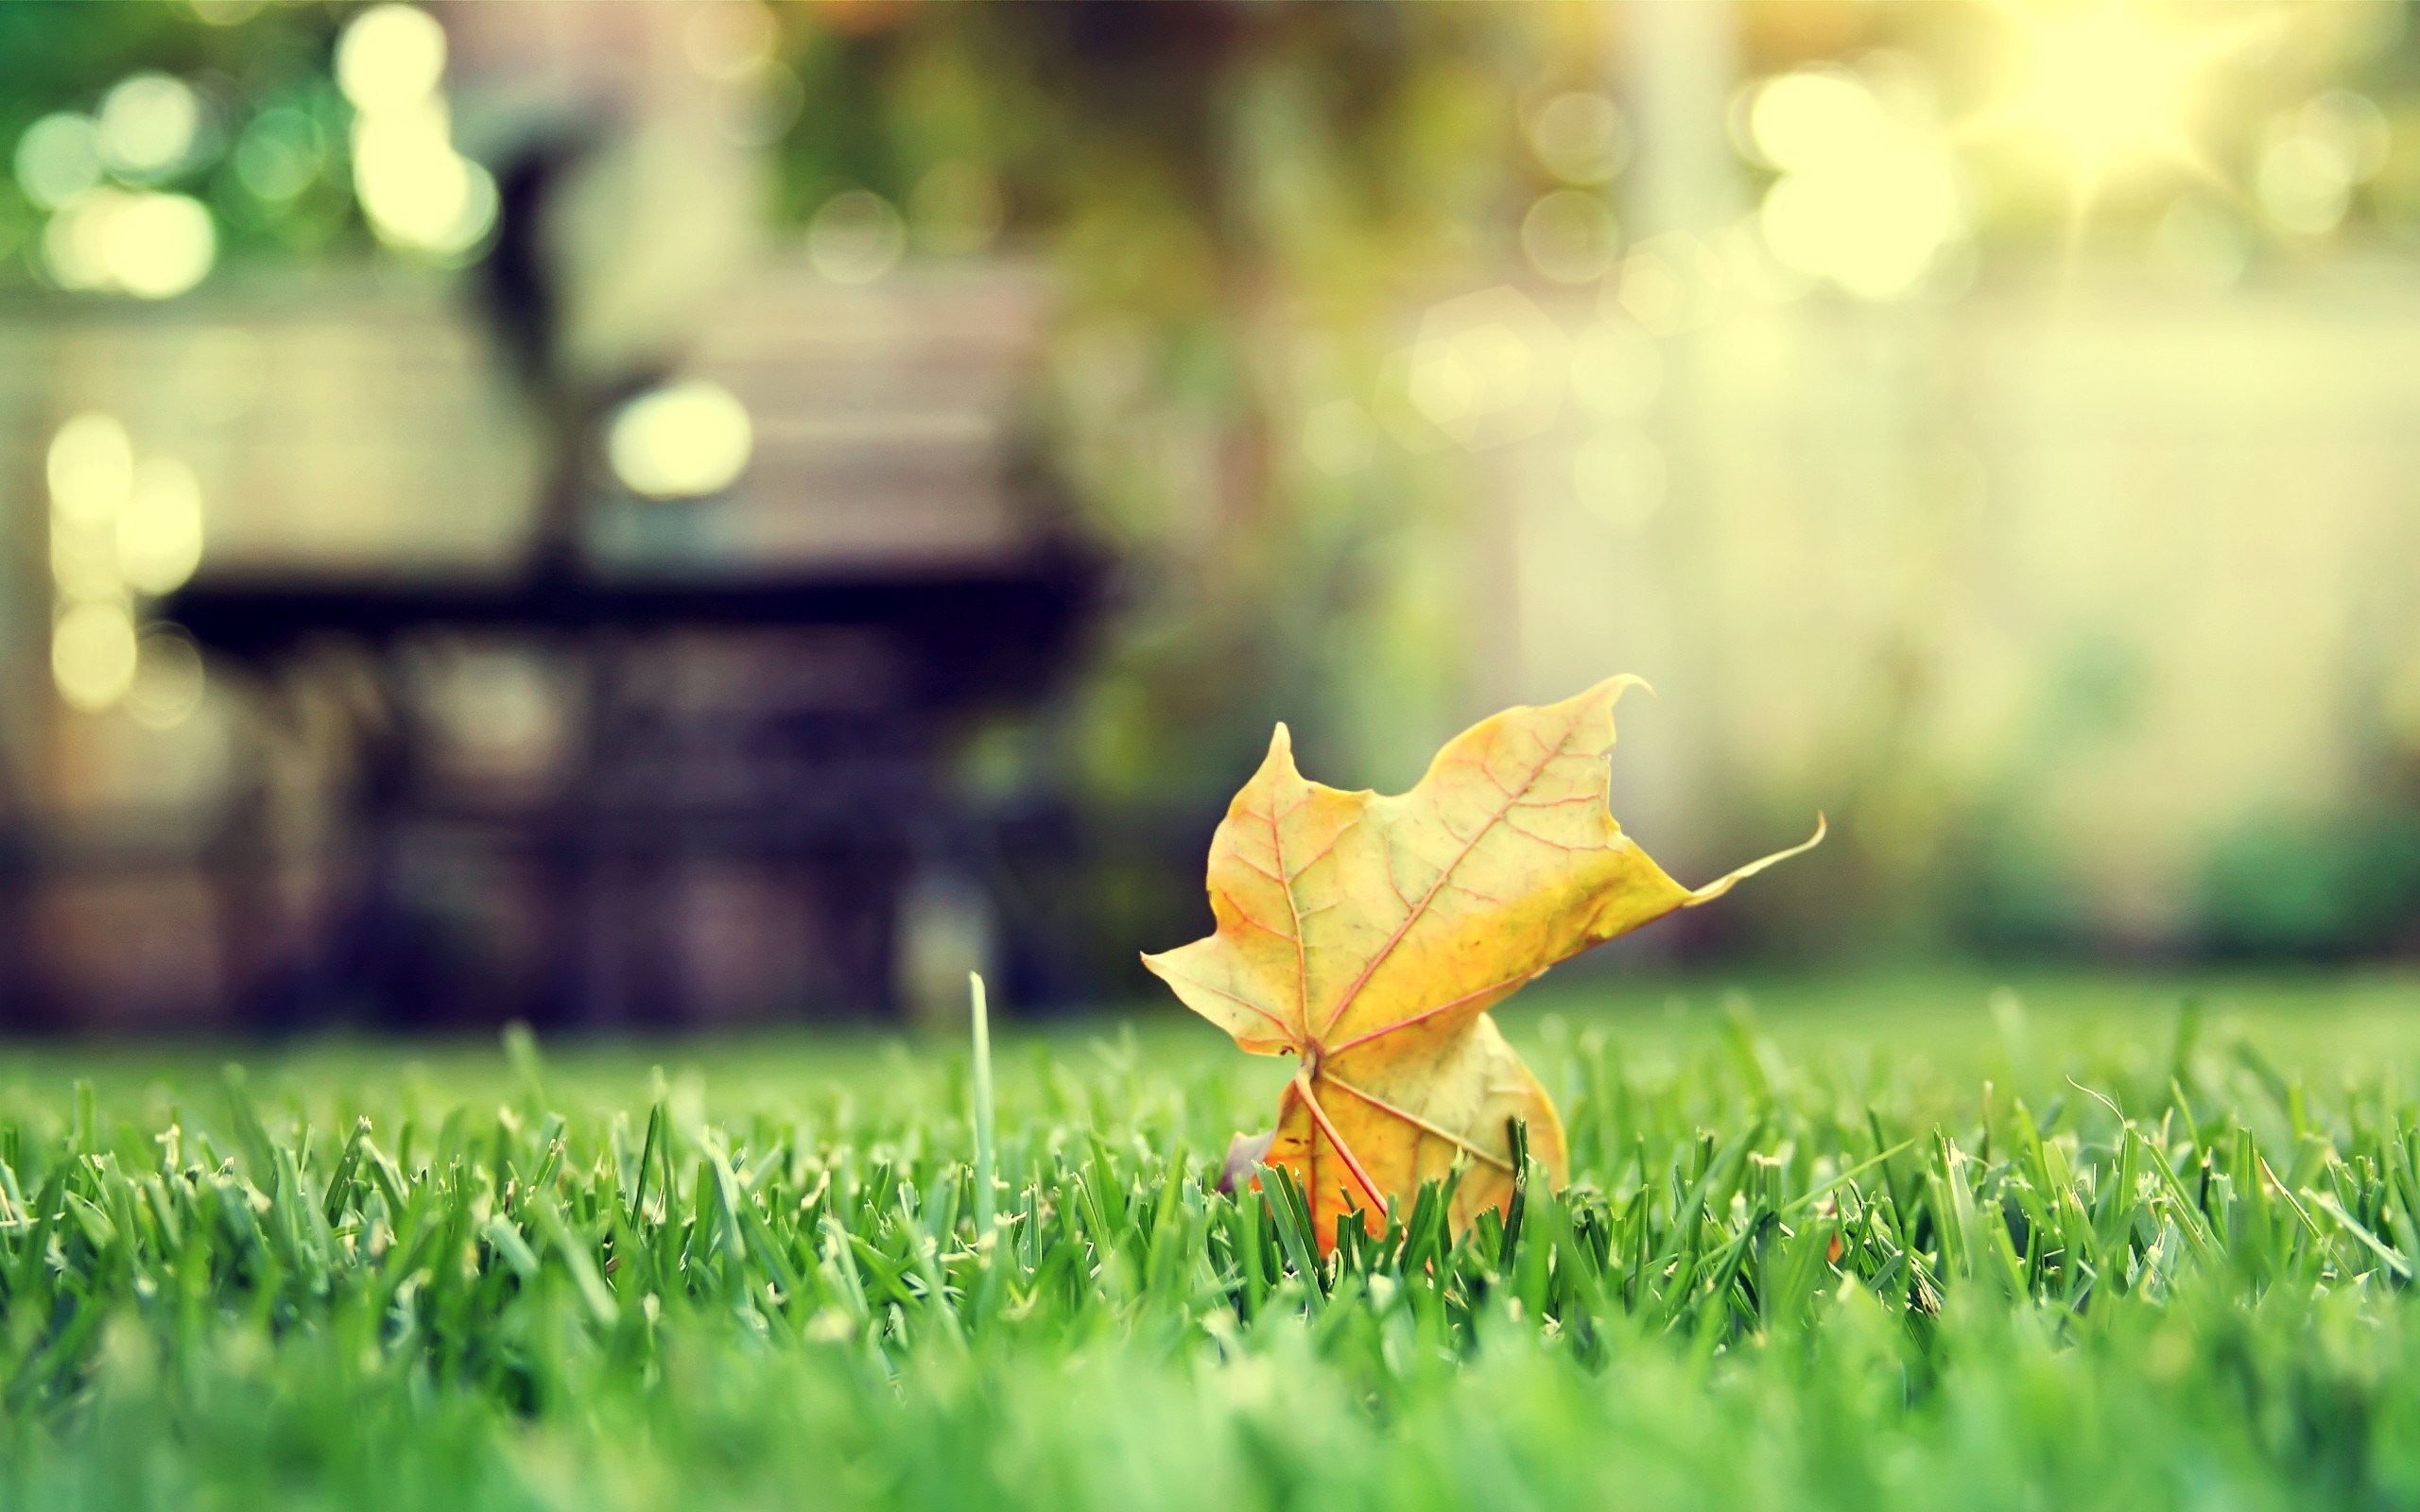 lonely dry leaf green grass bokeh wide hd wallpaper is a lovely background.